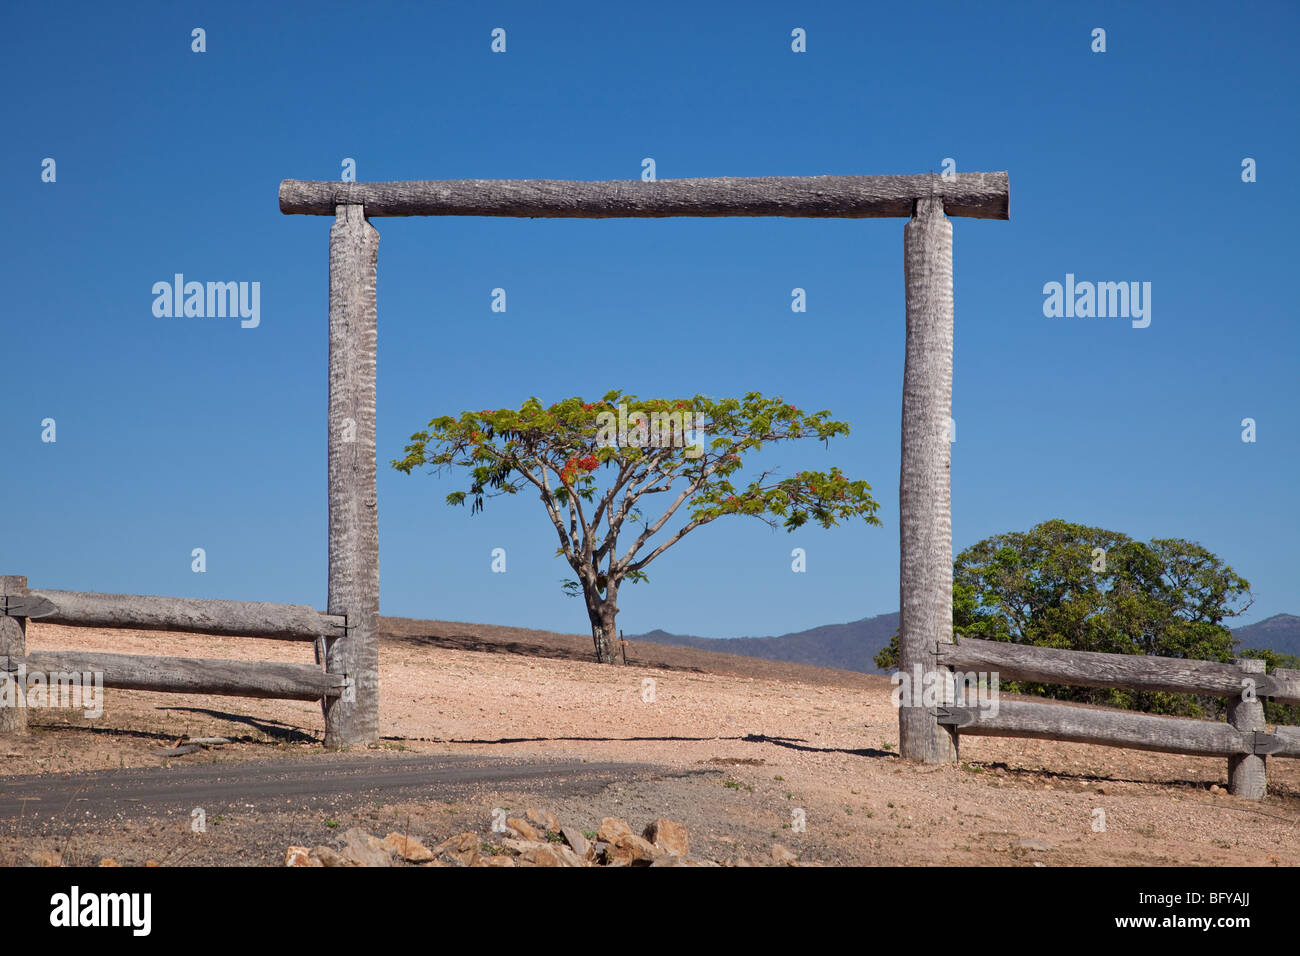 Springvale cattle station, and flowering Poinciana tree, near Cooktown, Queensland, Australia - Stock Image